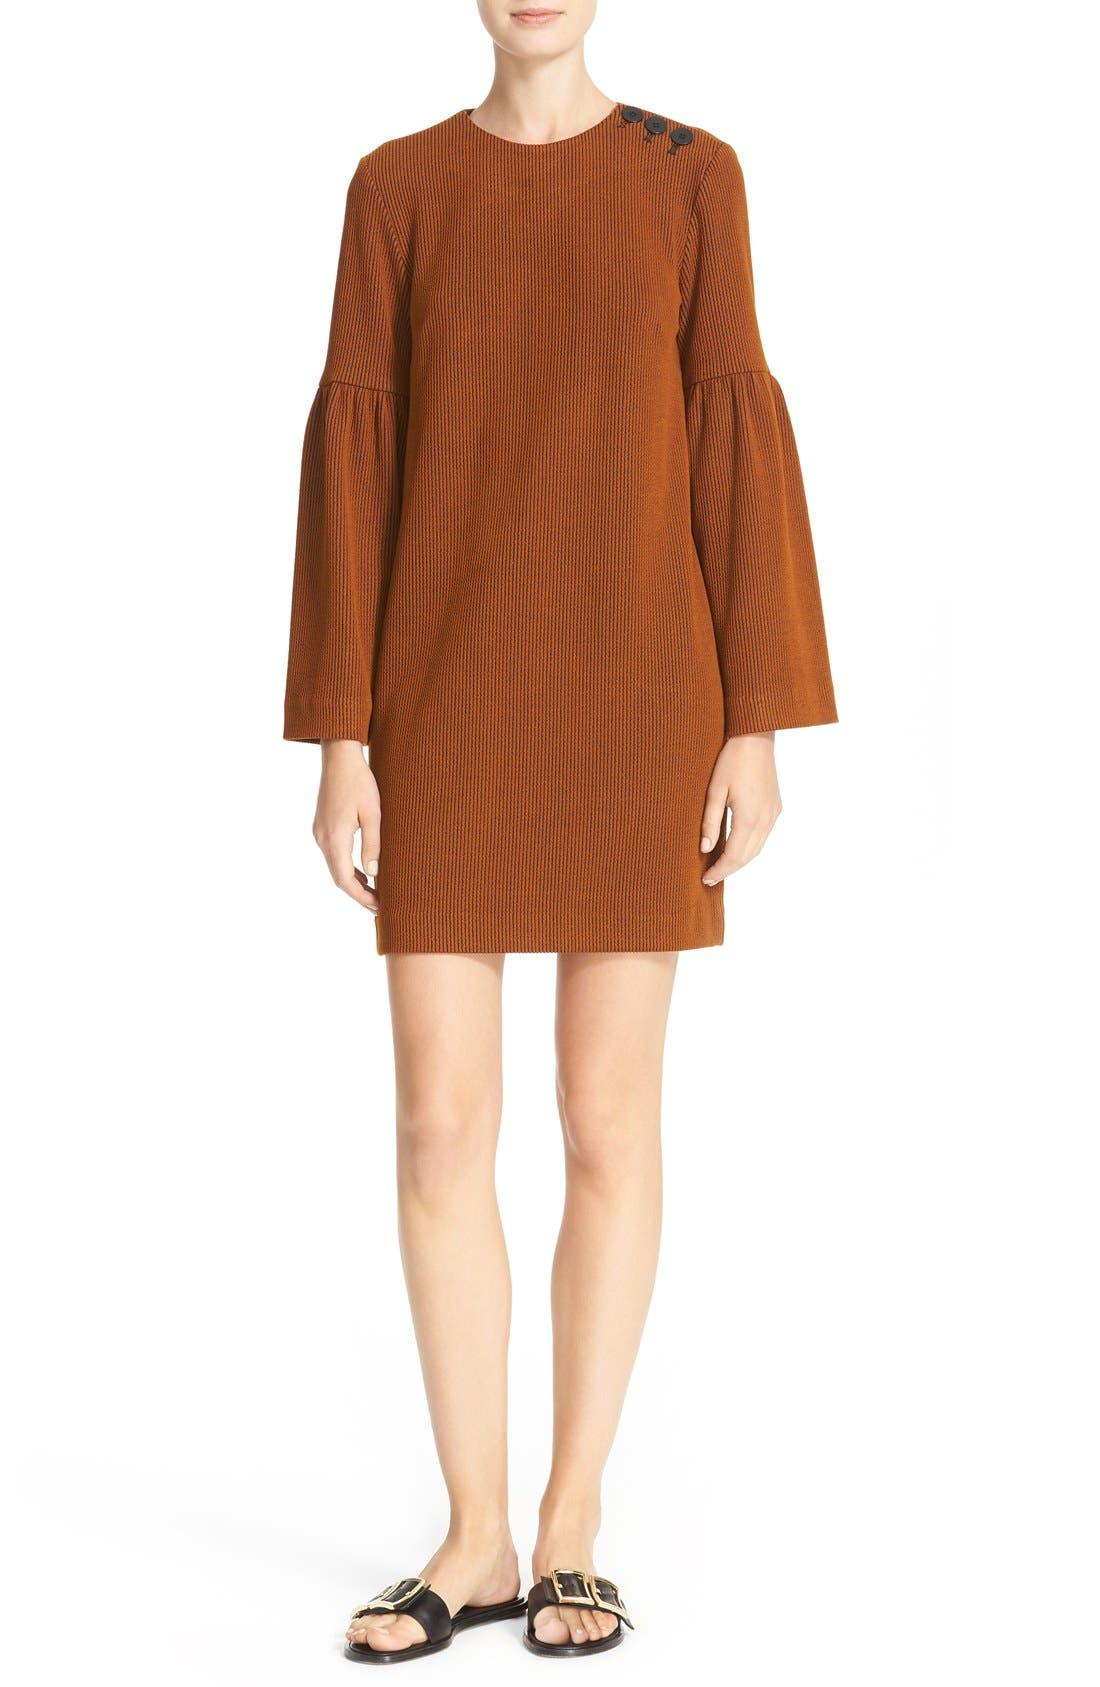 Alternate Image 1 Selected - Tibi Stripe Texture Knit Bell Sleeve Dress